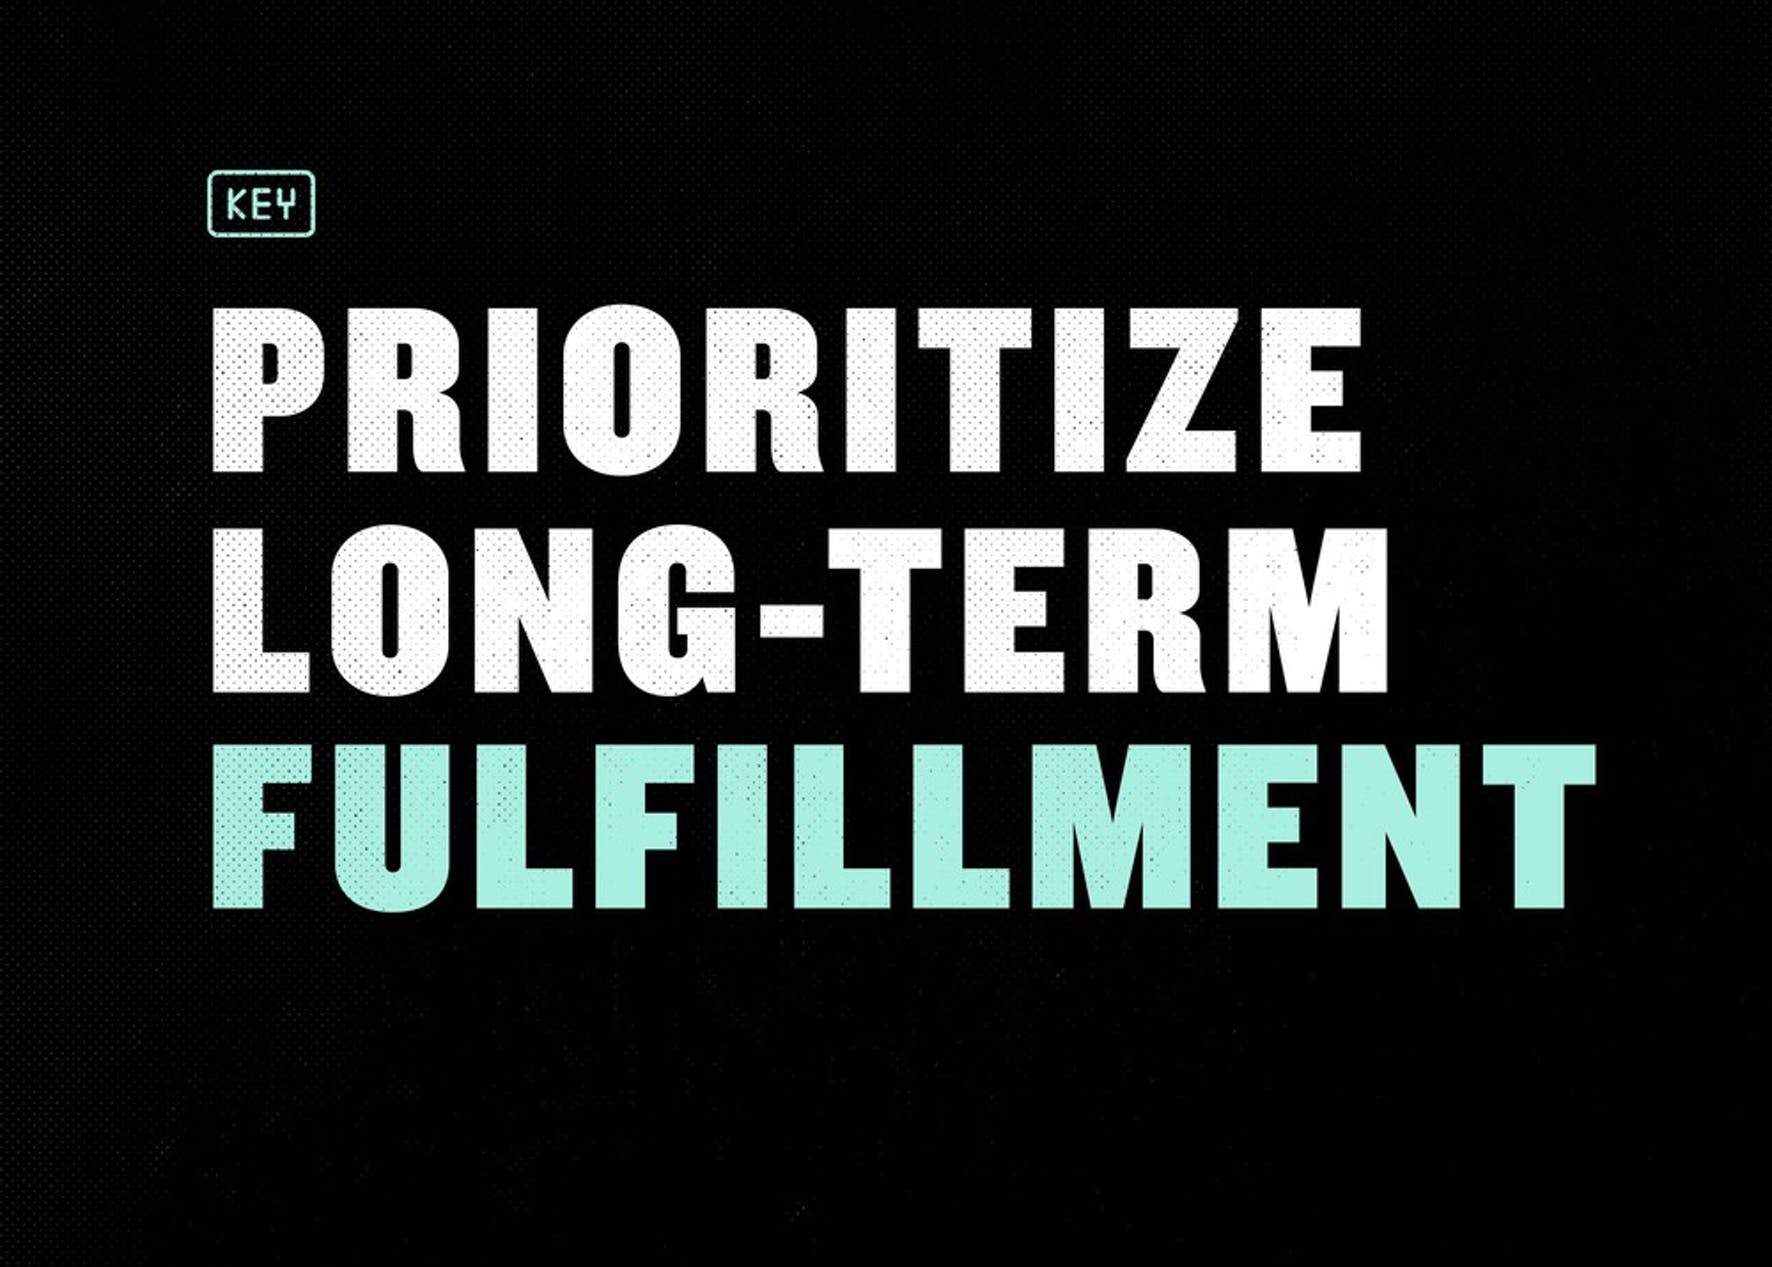 Long-term fulfillment is a key benefit of smart goal setting